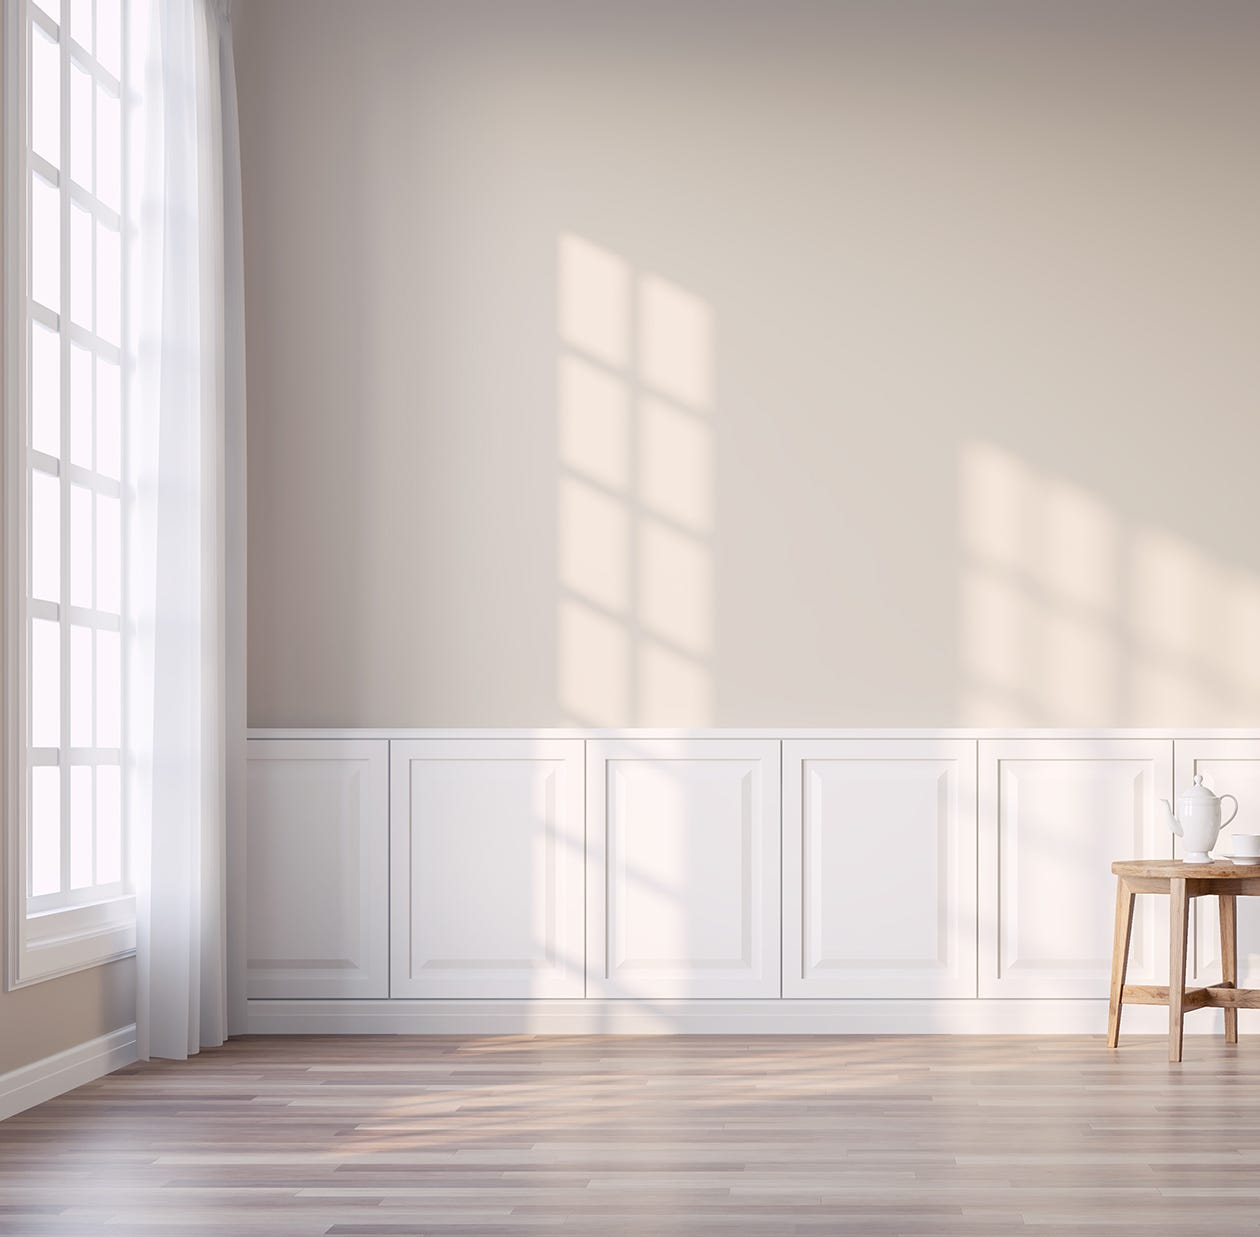 Tips for Selling a Vacant Home